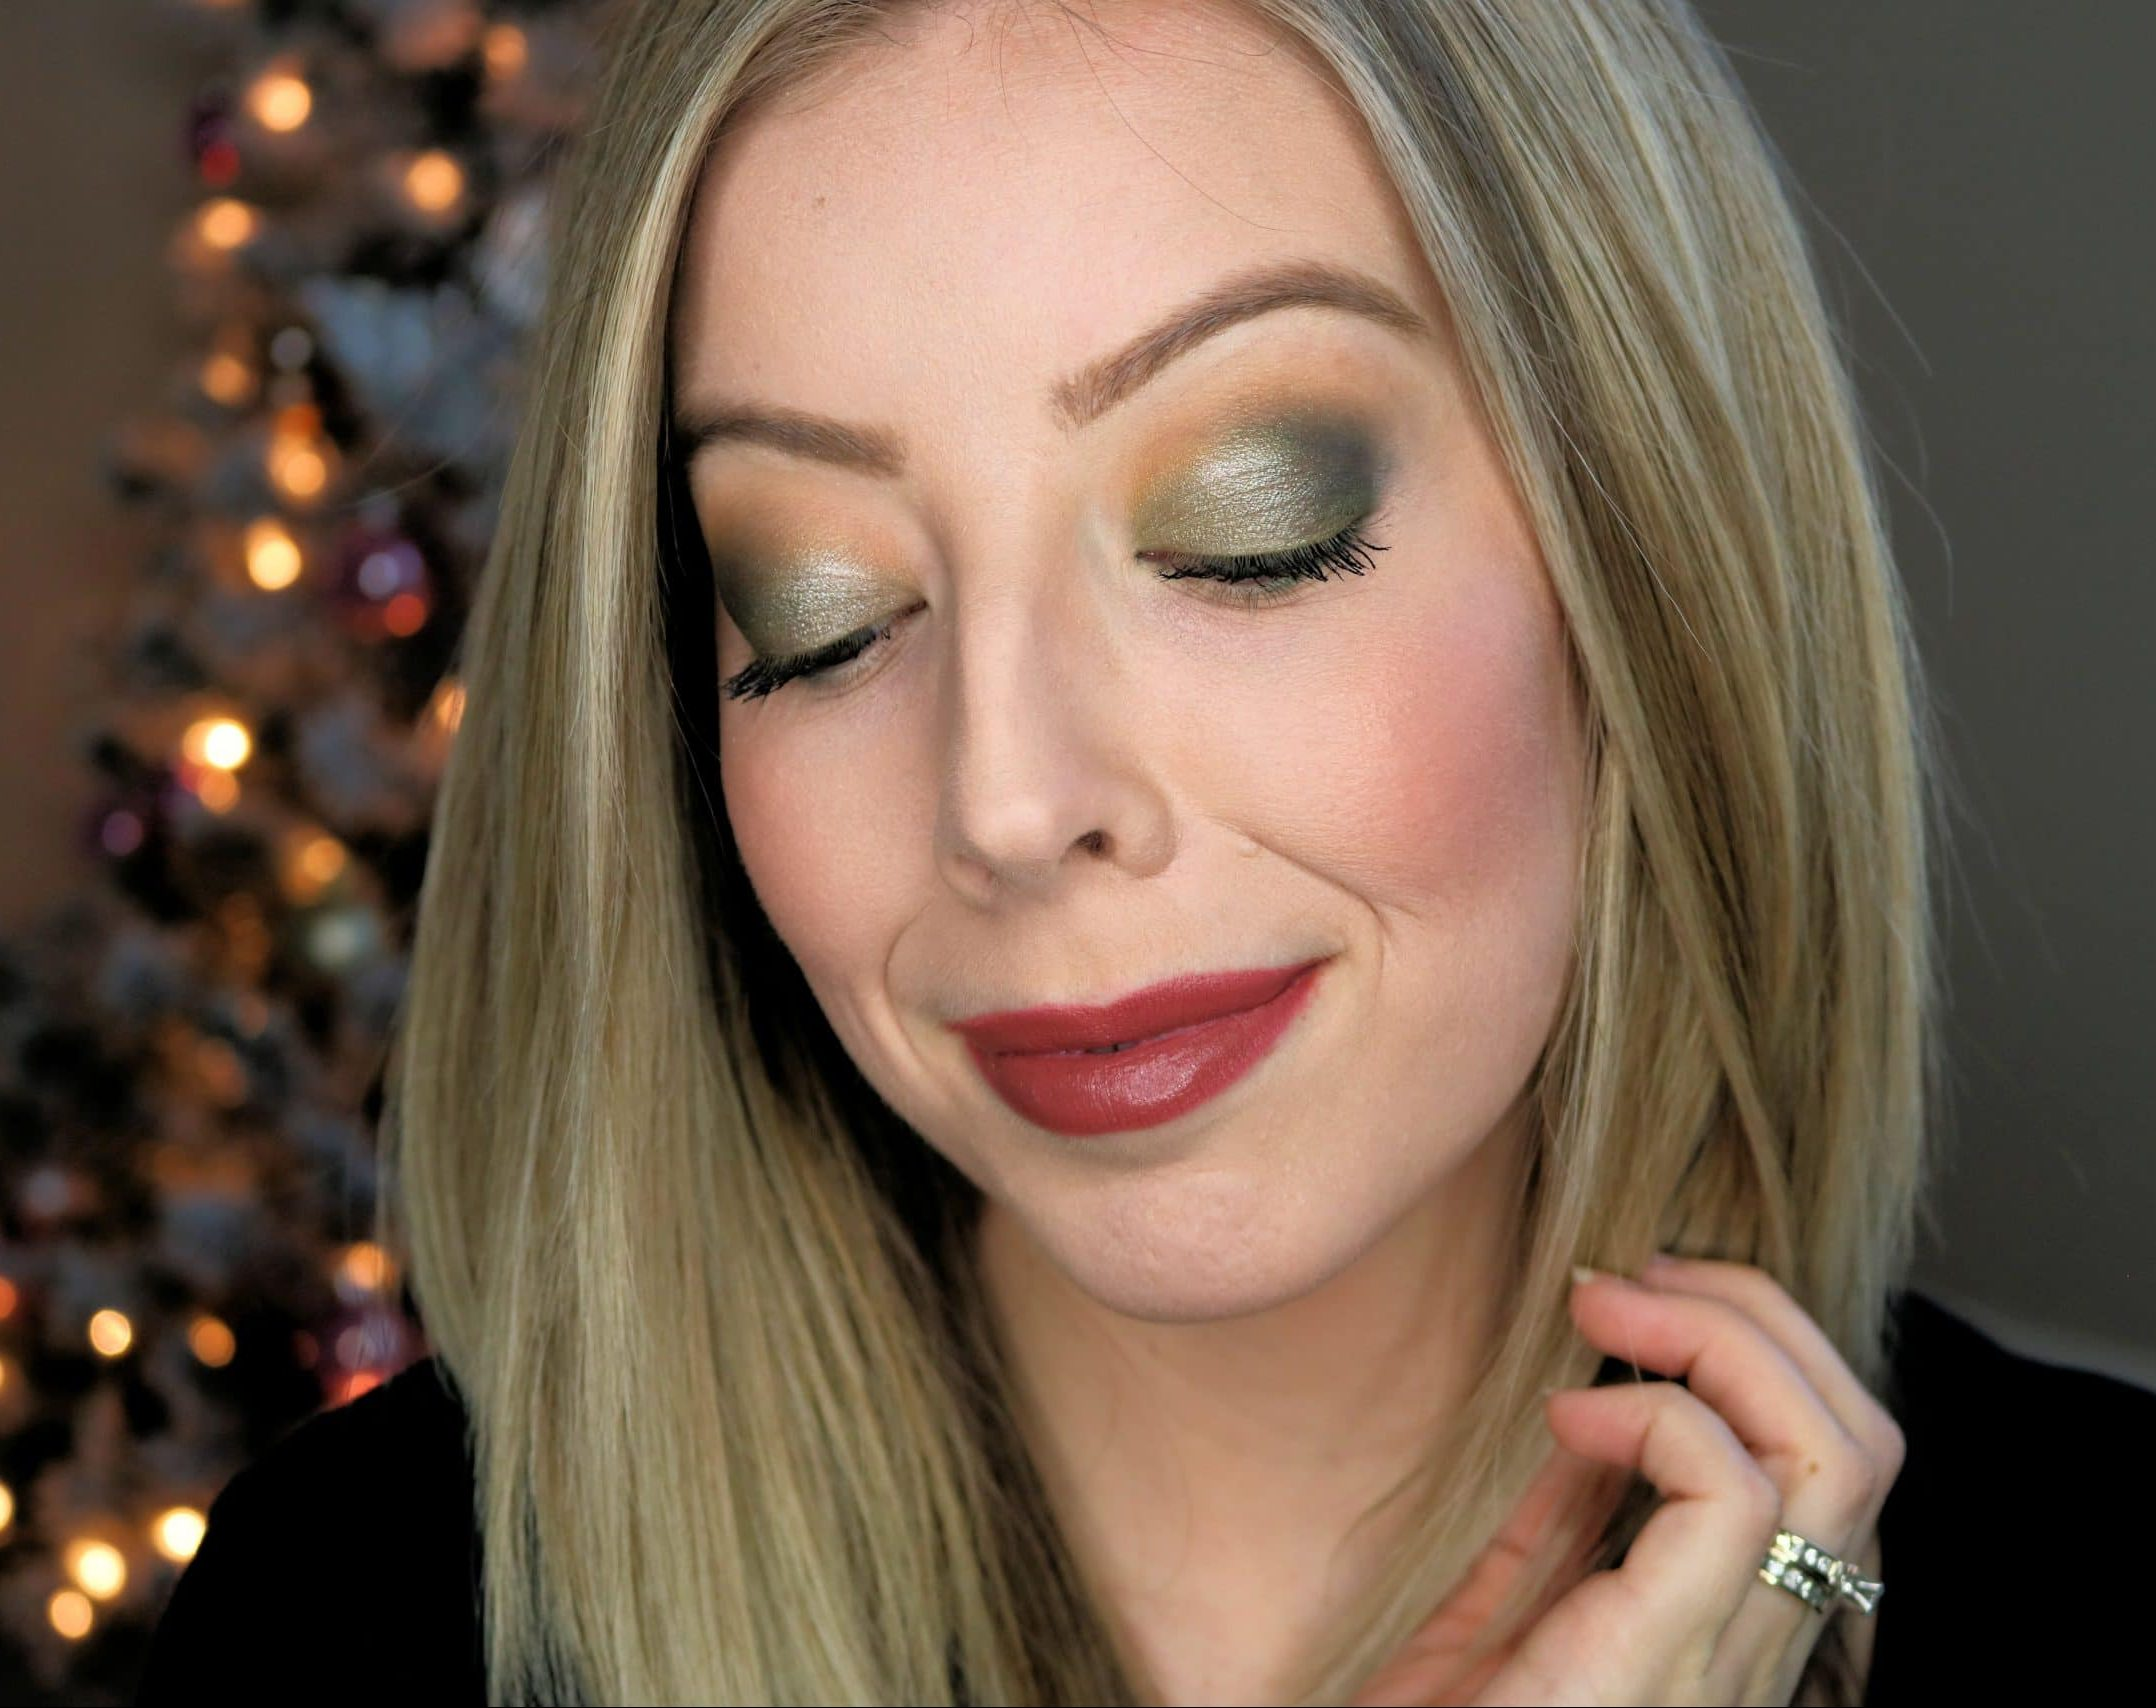 This easy holiday makeup look features a beautiful green eyeshadow with touches of gold shimmer and is perfect for wearing to Christmas and holiday parties. Check out all the makeup products used in my post! #holidaymakeup #makeup #makeuptutorial #drugstoremakeup #greeneyeshadow